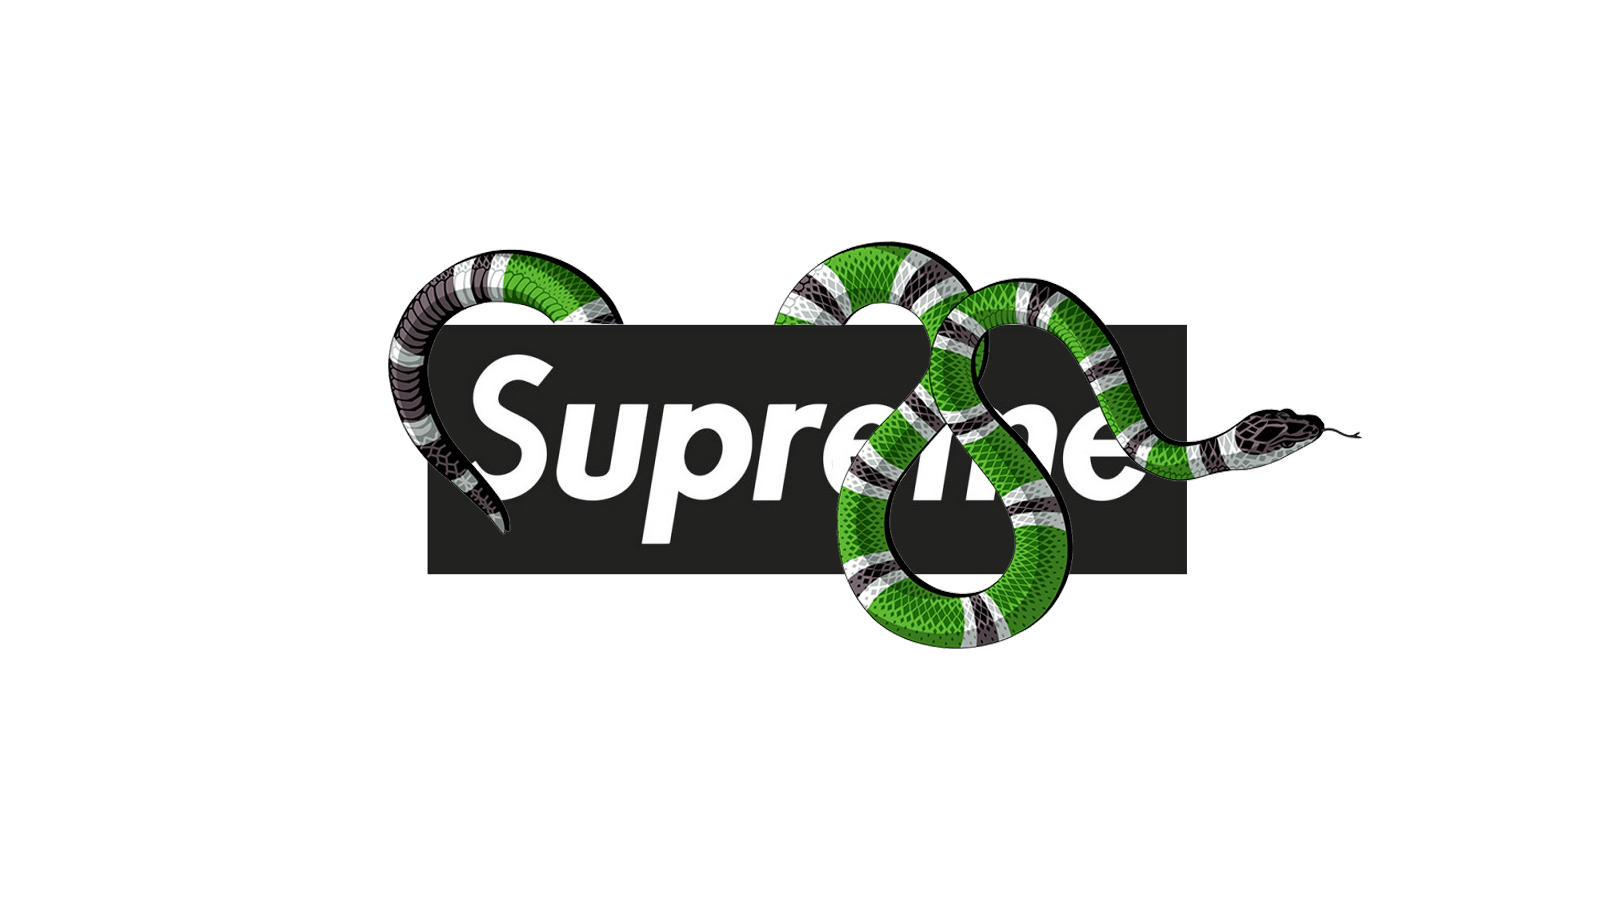 Supreme Gucci Wallpapers Top Free Supreme Gucci